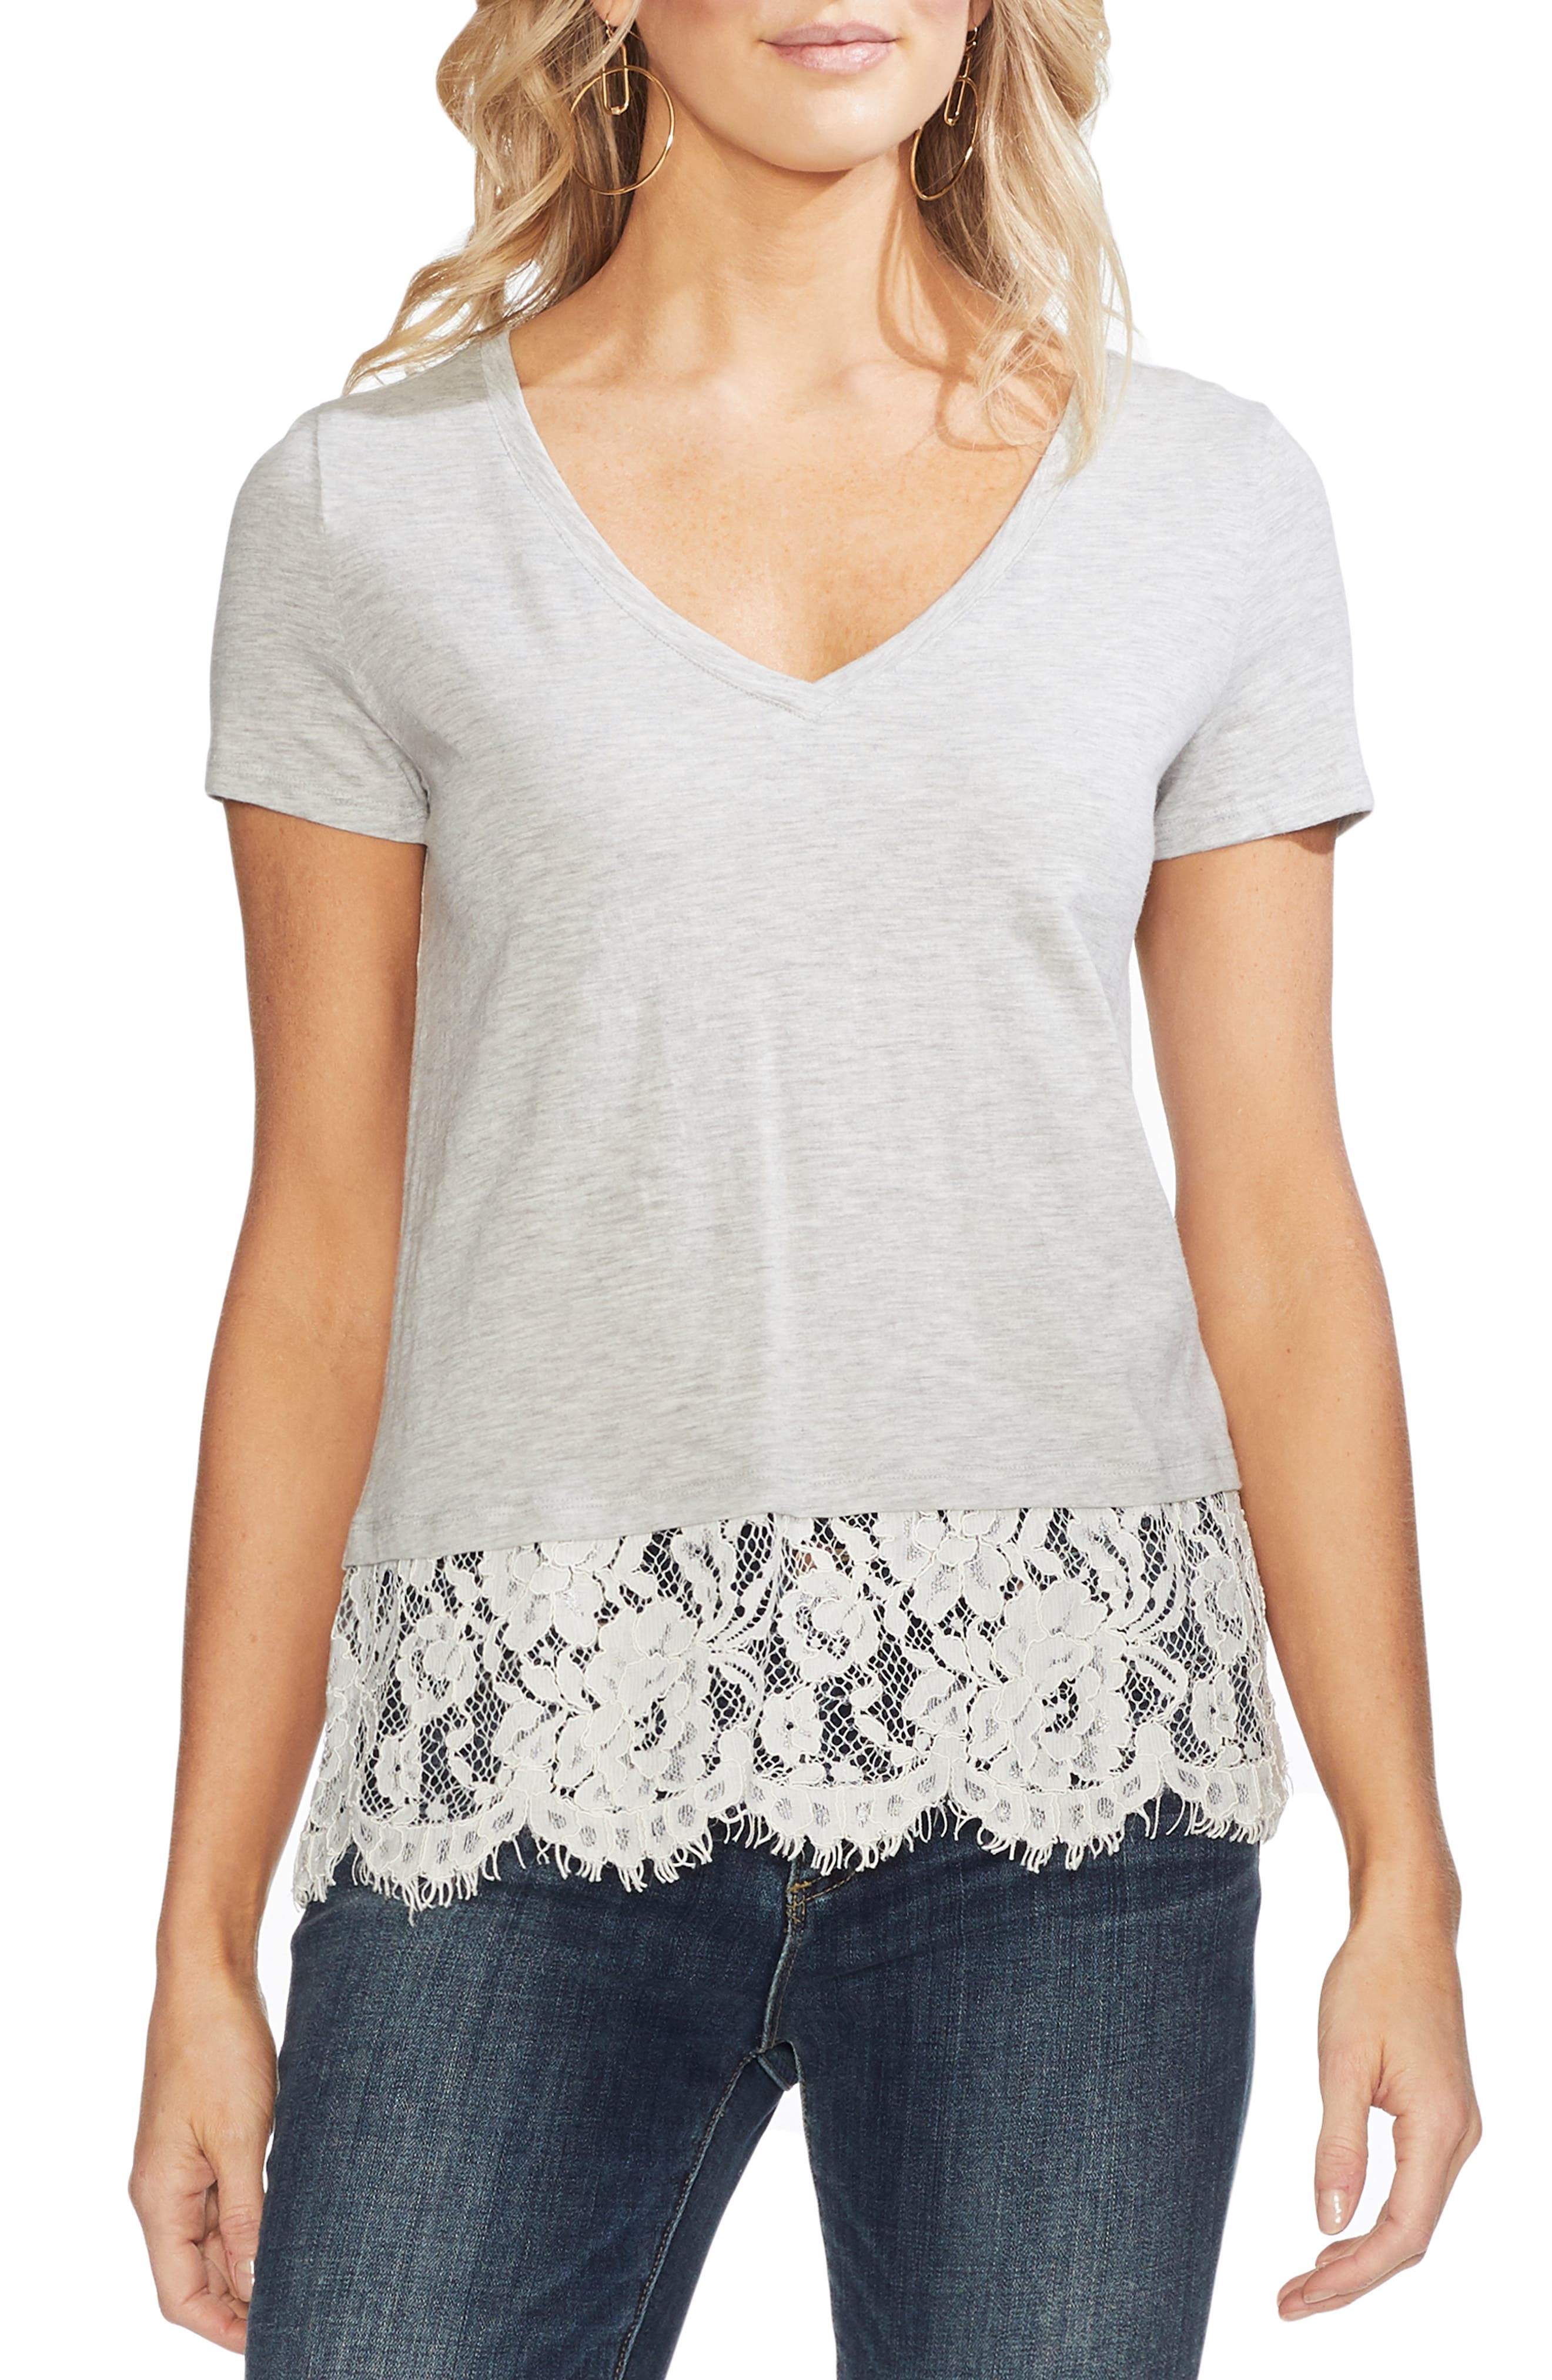 Vince Camuto Tops LACE BORDER V-NECK TEE